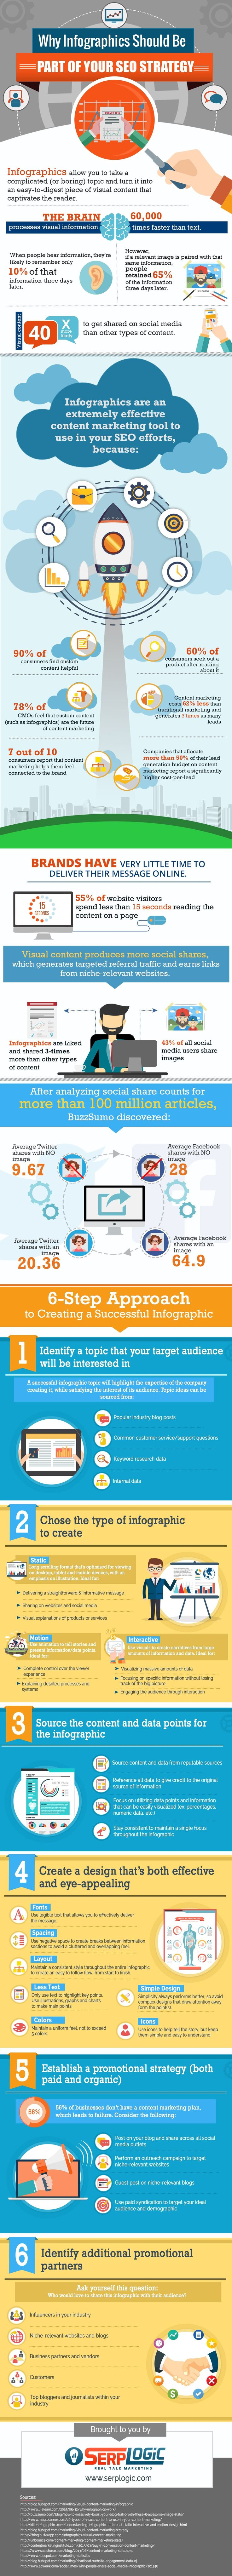 Why Infographics Should Be Part of Your SEO Strategy - #Infographic